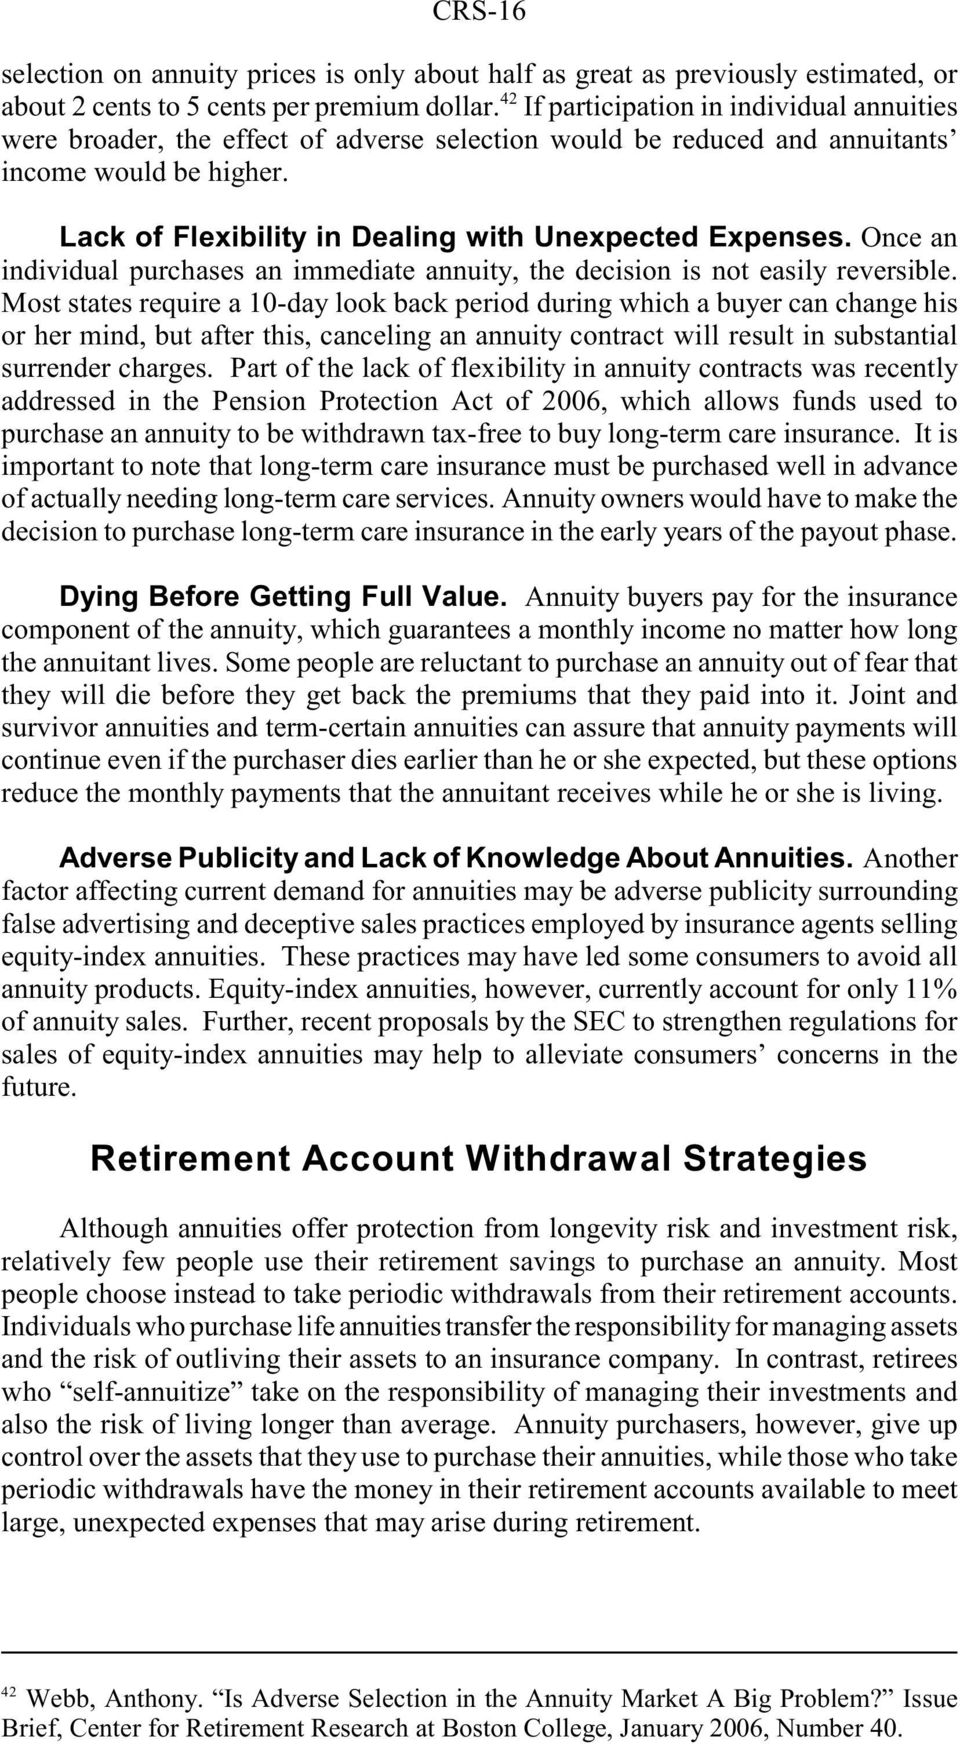 Once an individual purchases an immediate annuity, the decision is not easily reversible.